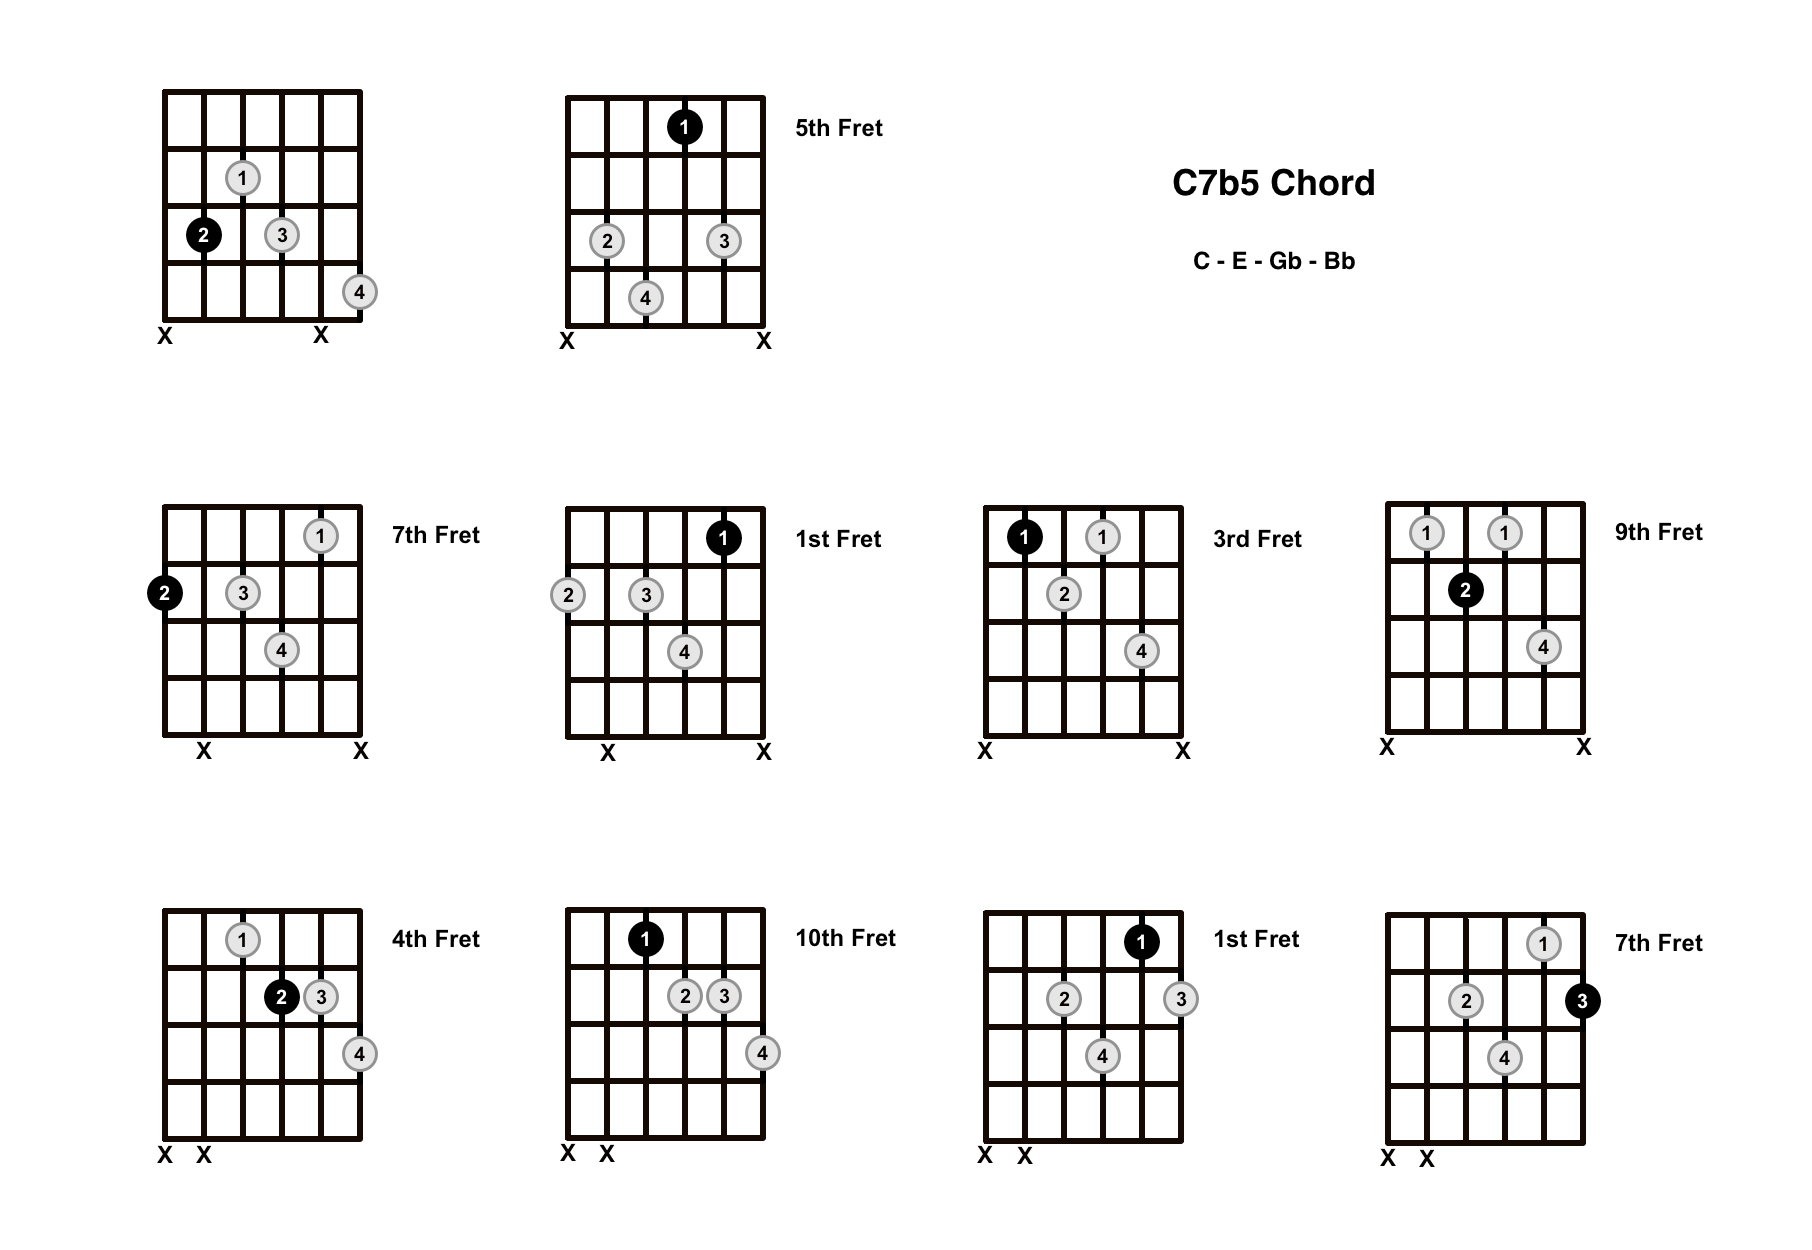 C7b5 Chord On The Guitar (C Dominant 7 Flat 5) – Diagrams, Finger Positions and Theory